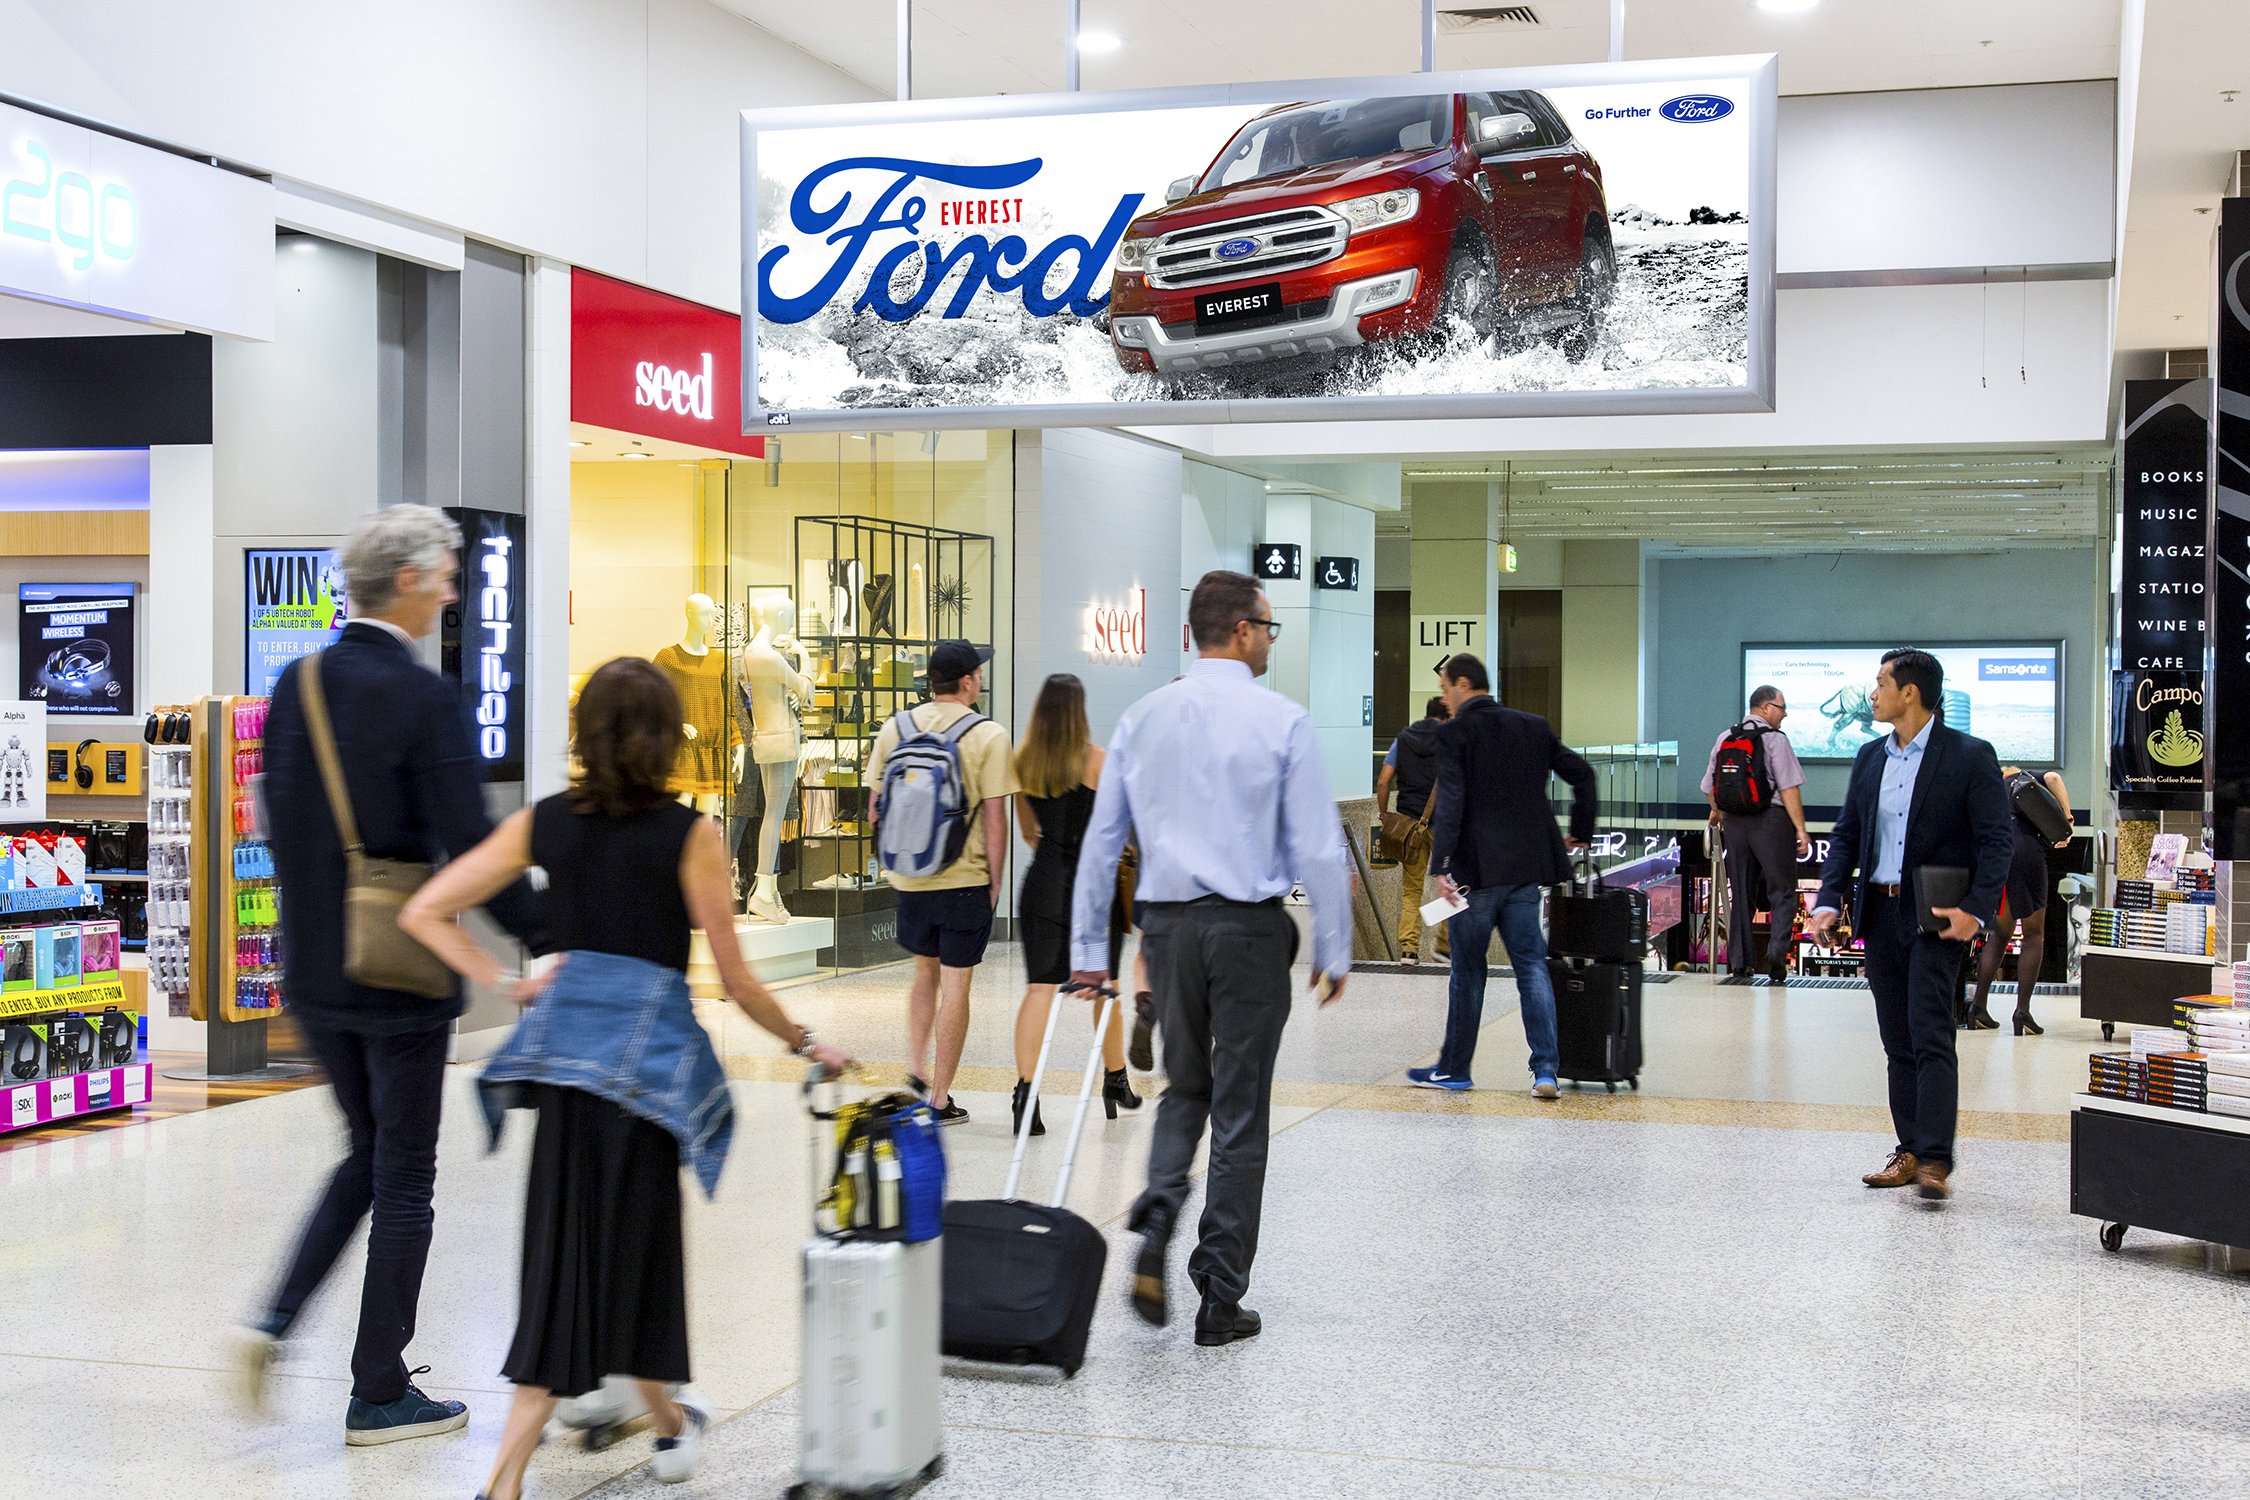 ford_3058ld_melbourneairport_170317